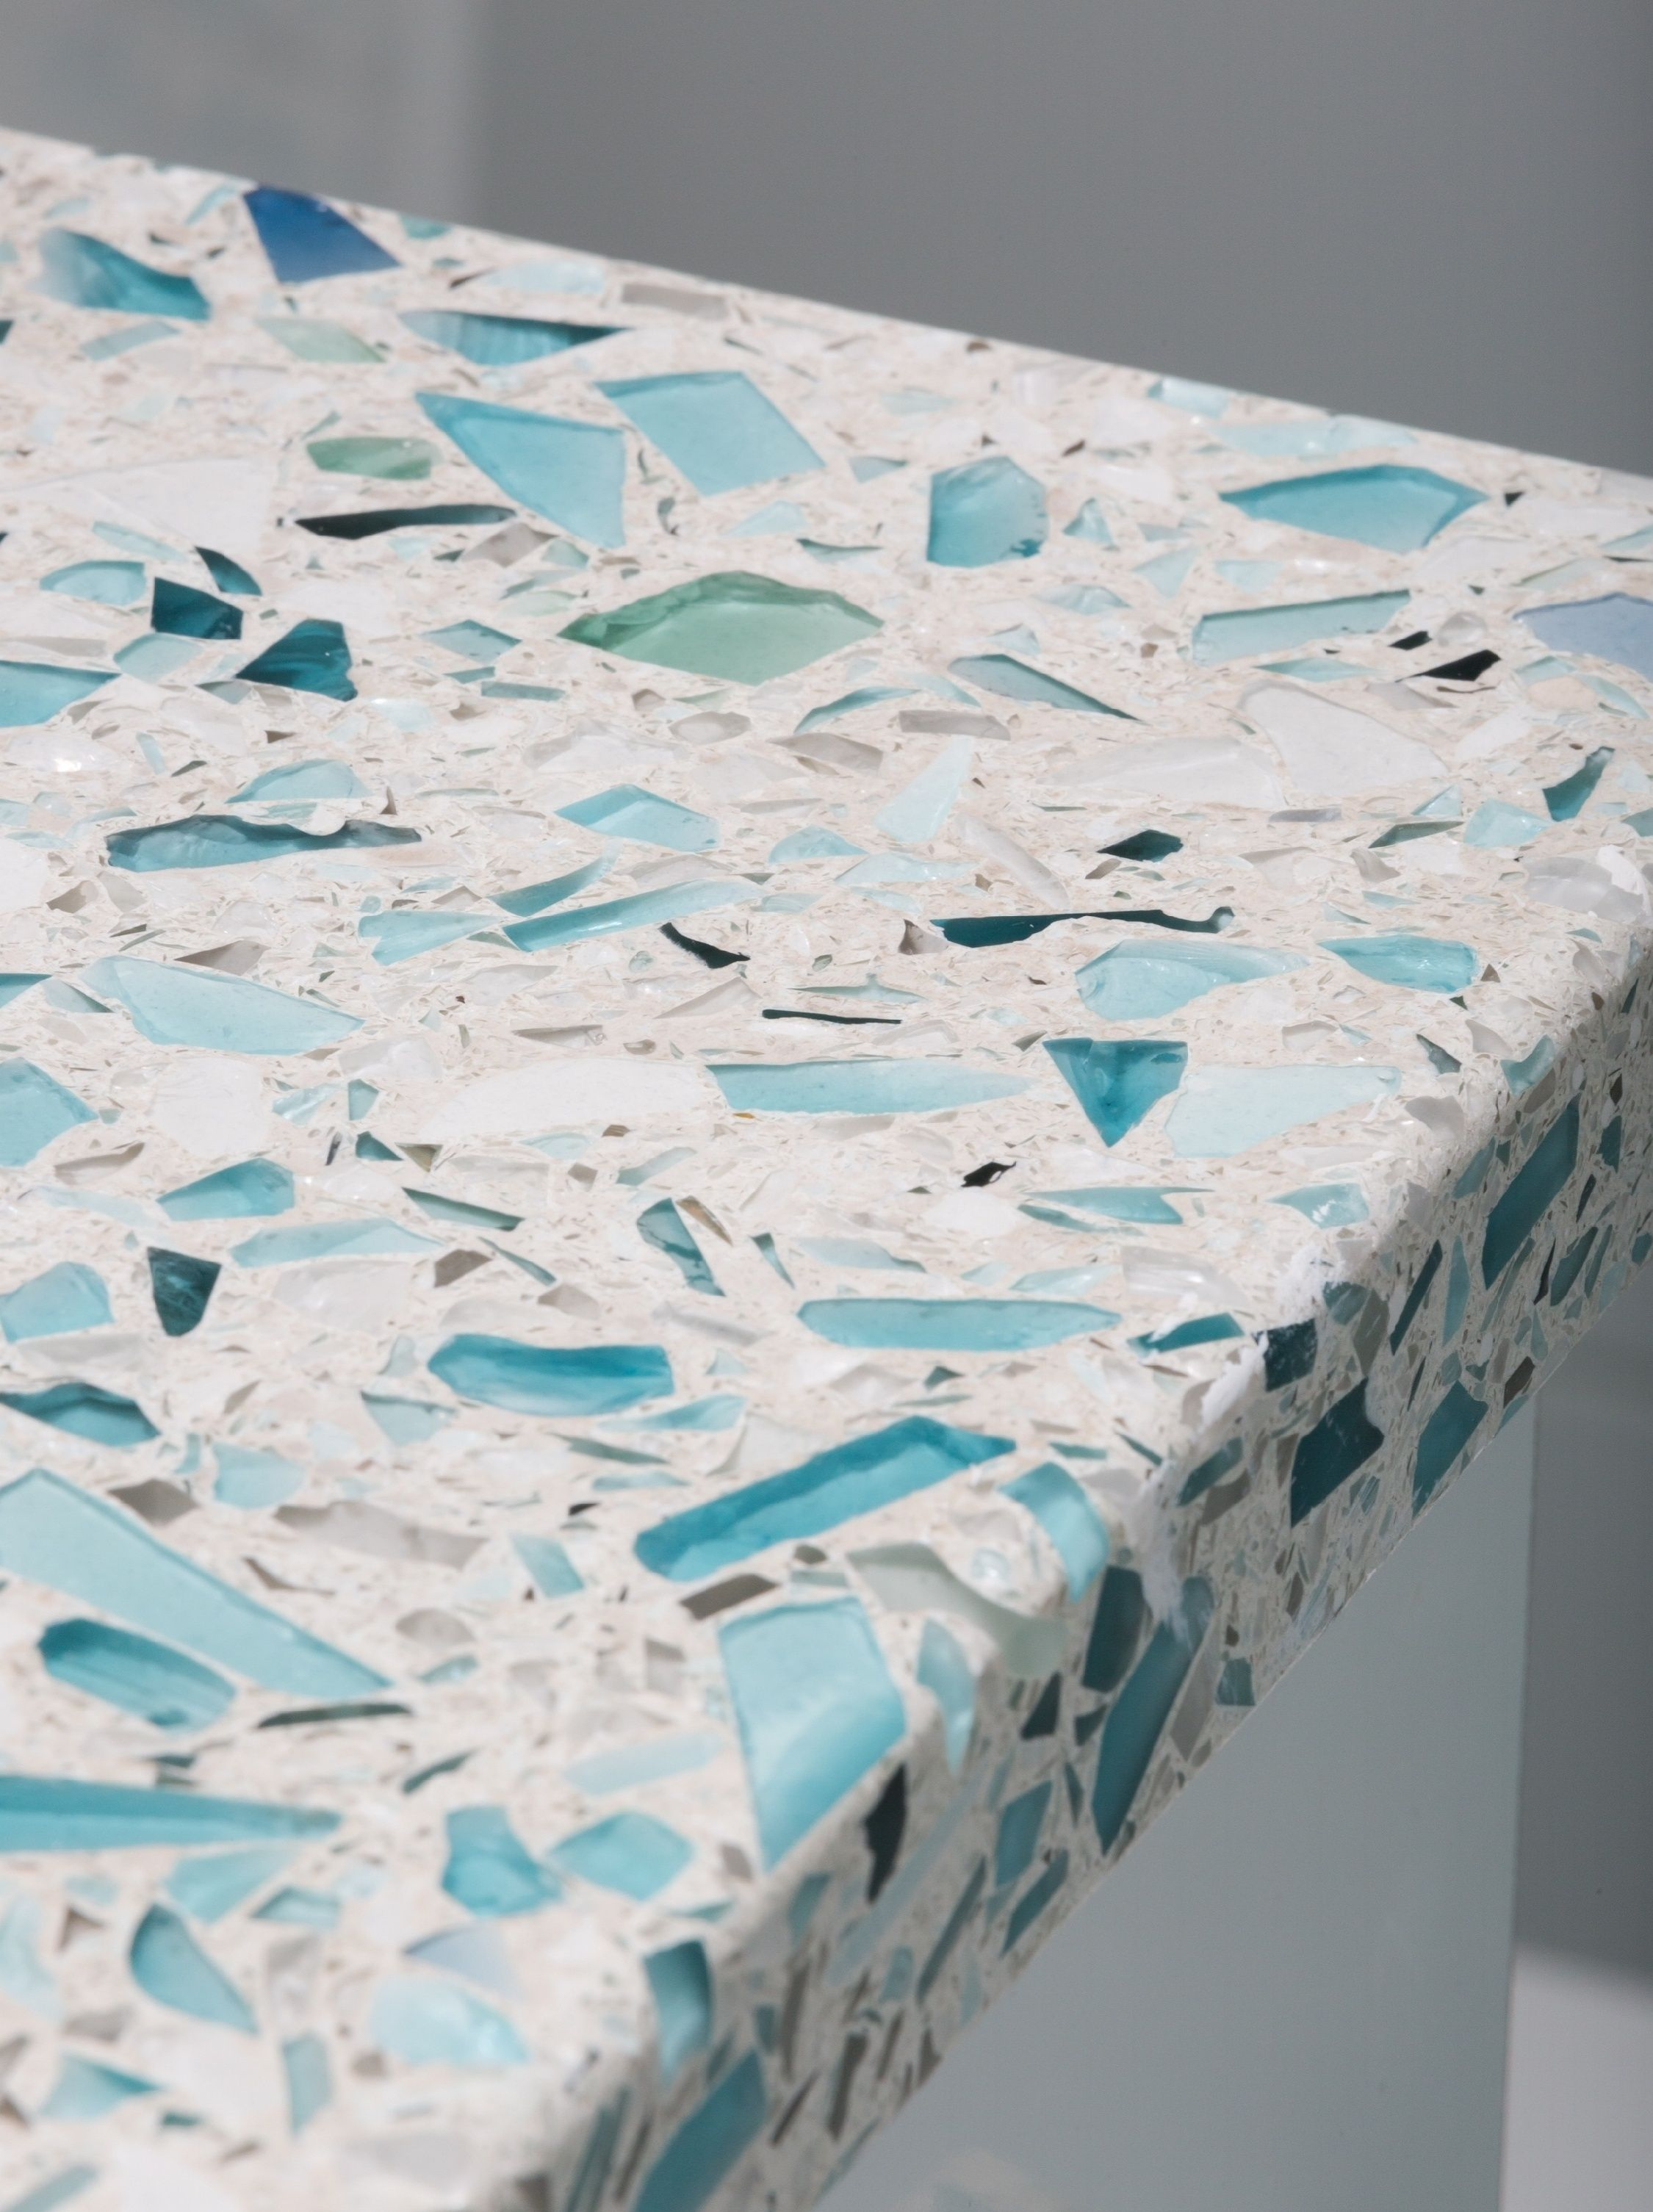 recycled glass kitchen countertops beveled tiles crushed countertop vetrazzo floating blue sea pearl